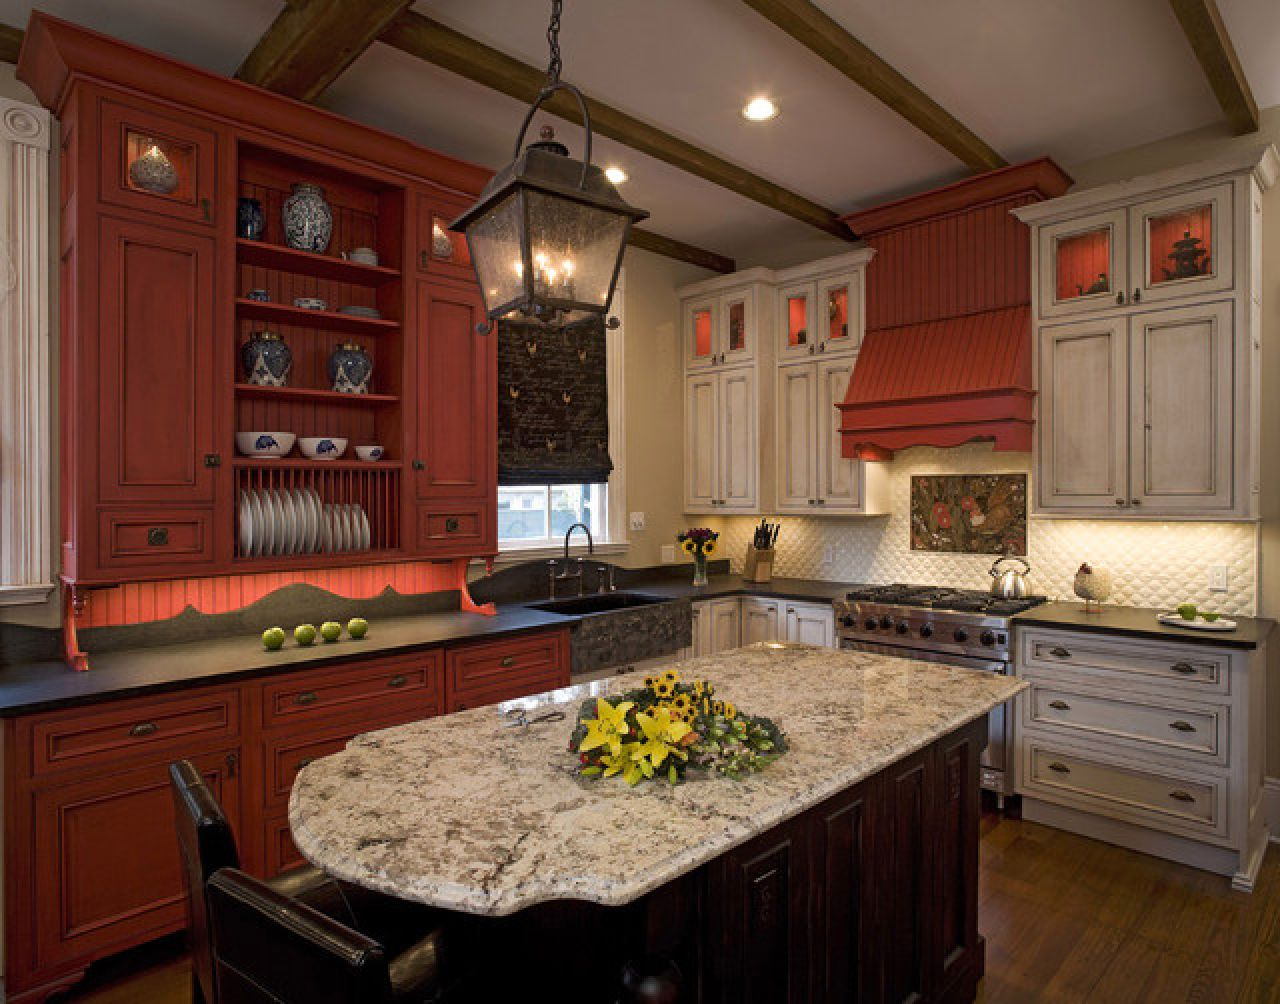 Inspirational Traditional Chinese Kitchen Design Asian Kitchenss